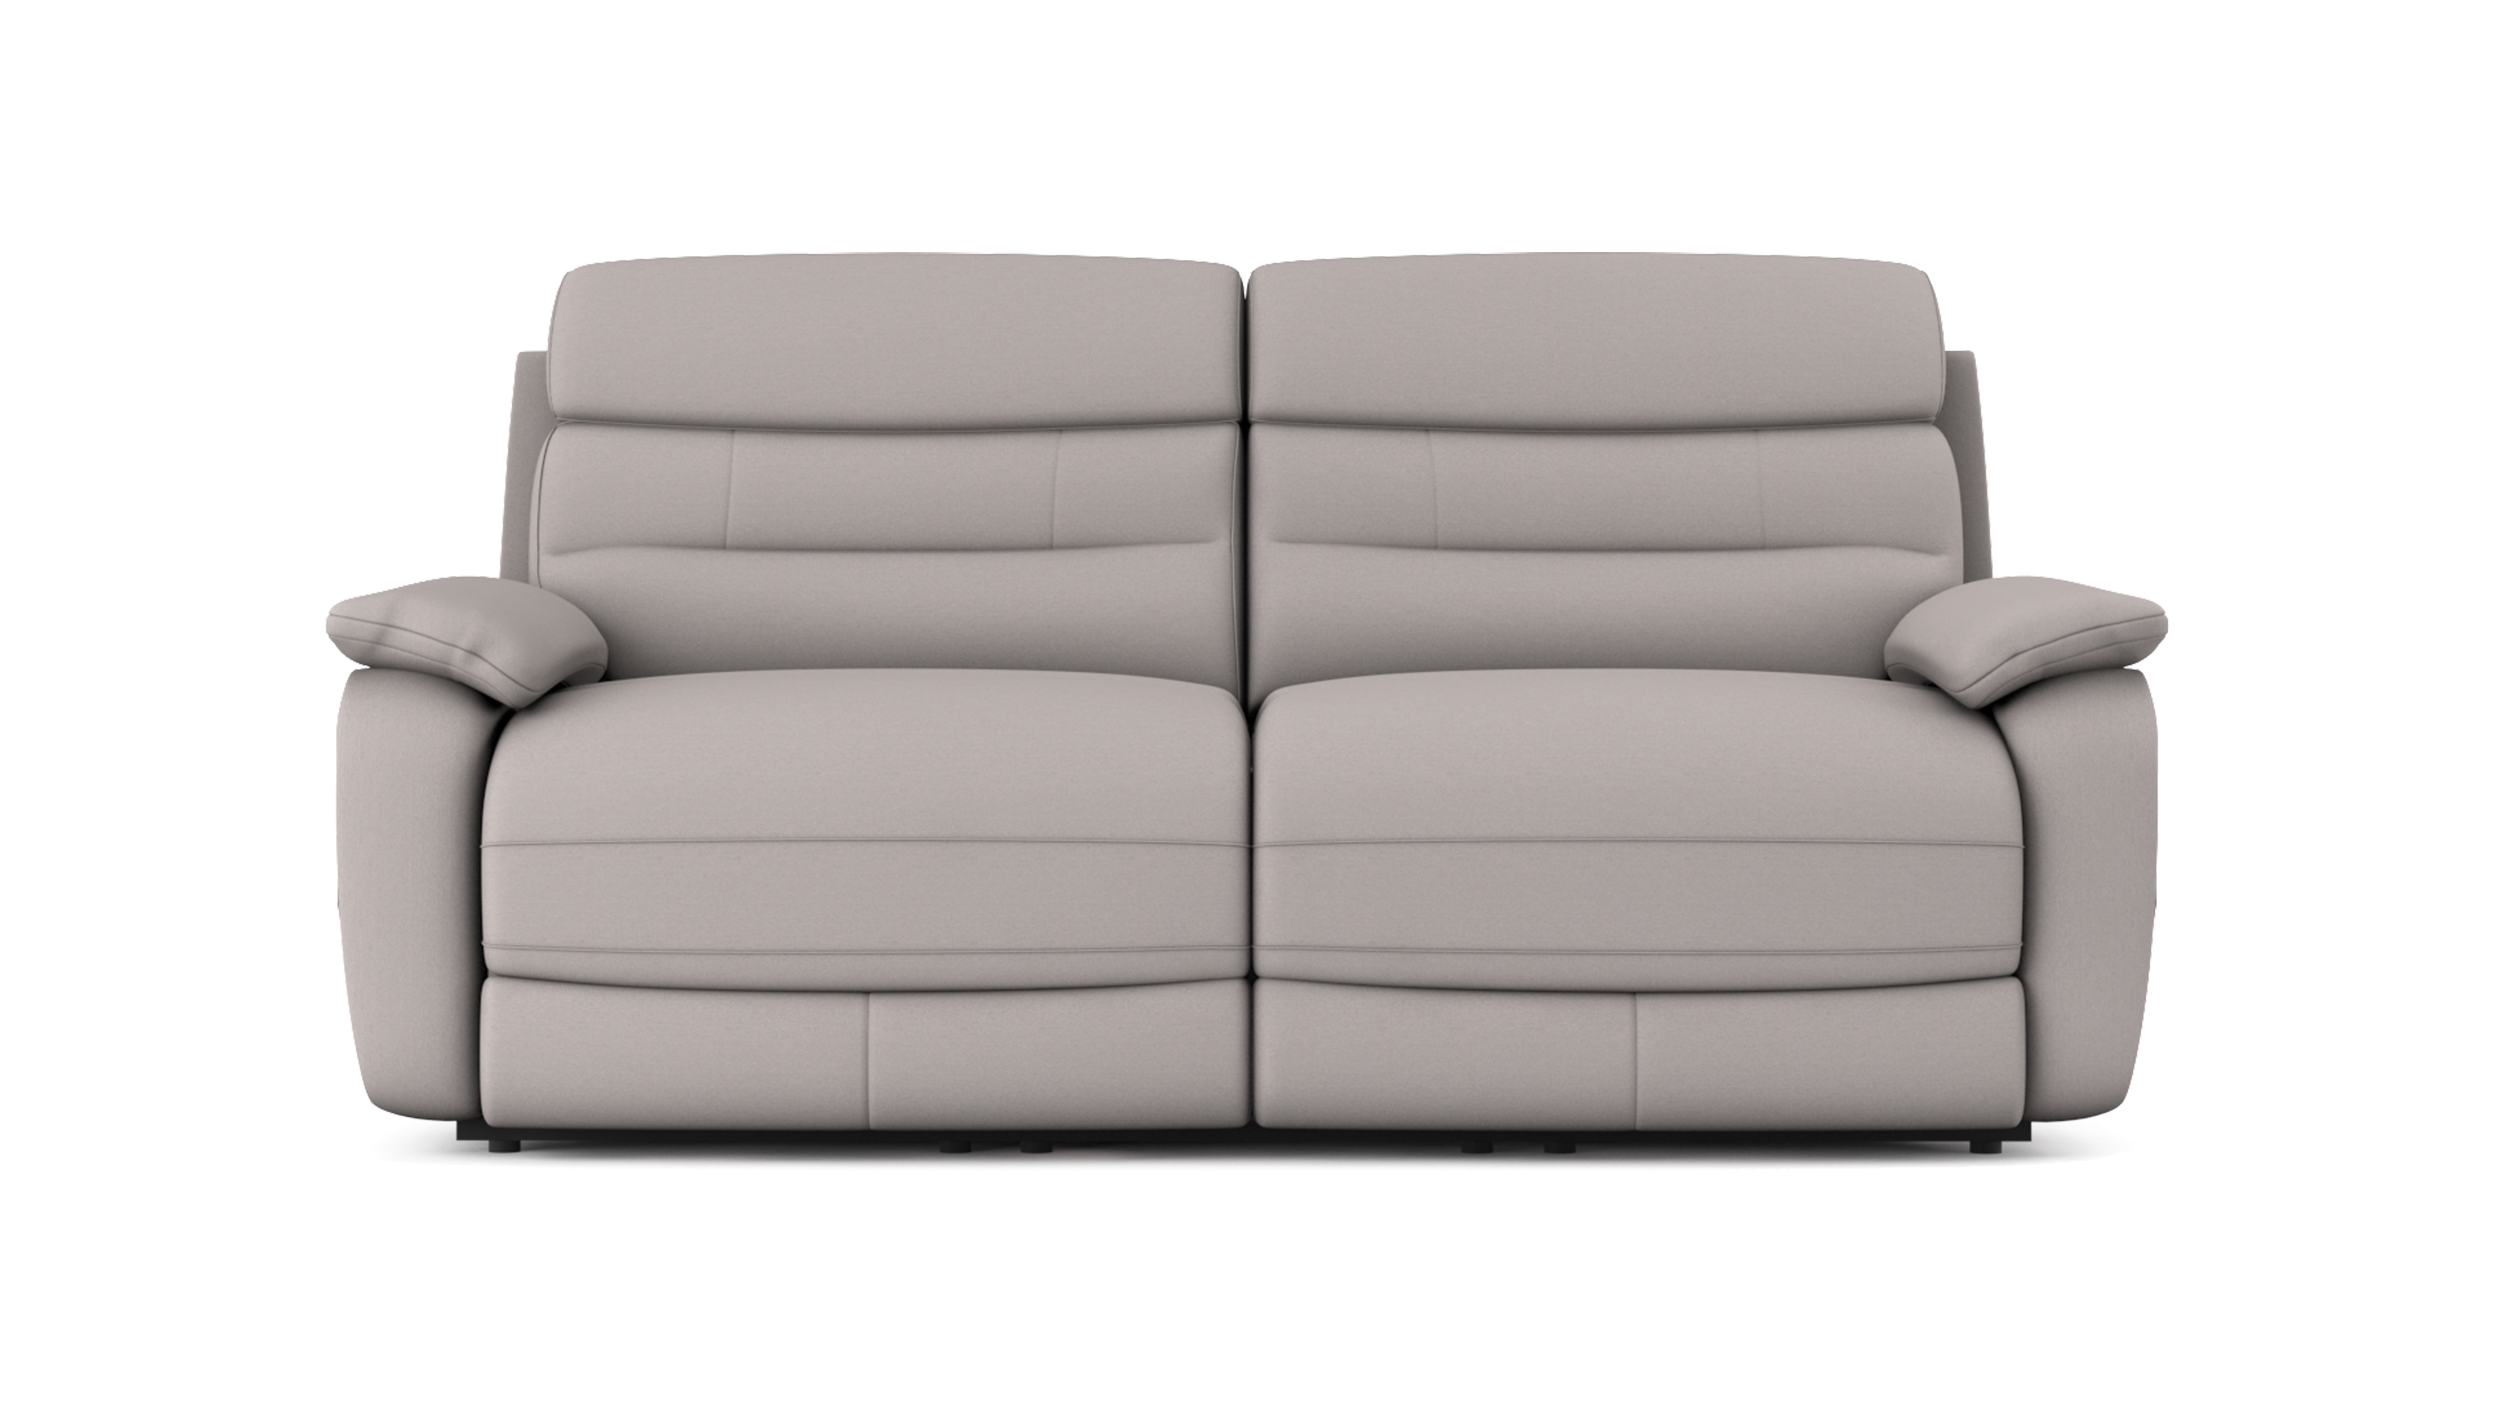 James 3 Seater Power Recliner Sofa in Fabric